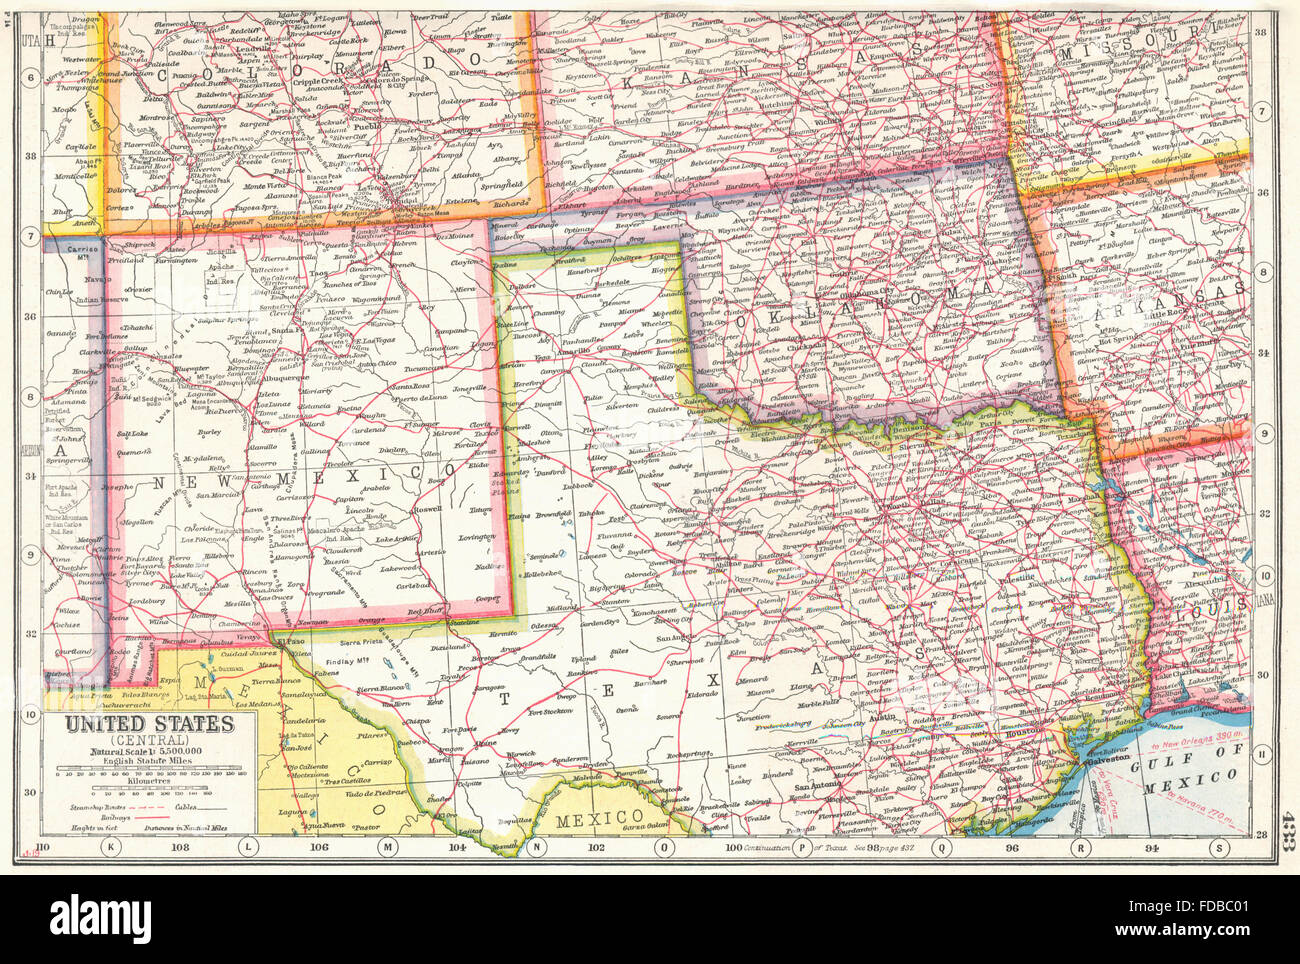 Map Of New Mexico And Texas USA SOUTH CENTRE: New Mexico Oklahoma North Texas. HARMSWORTH